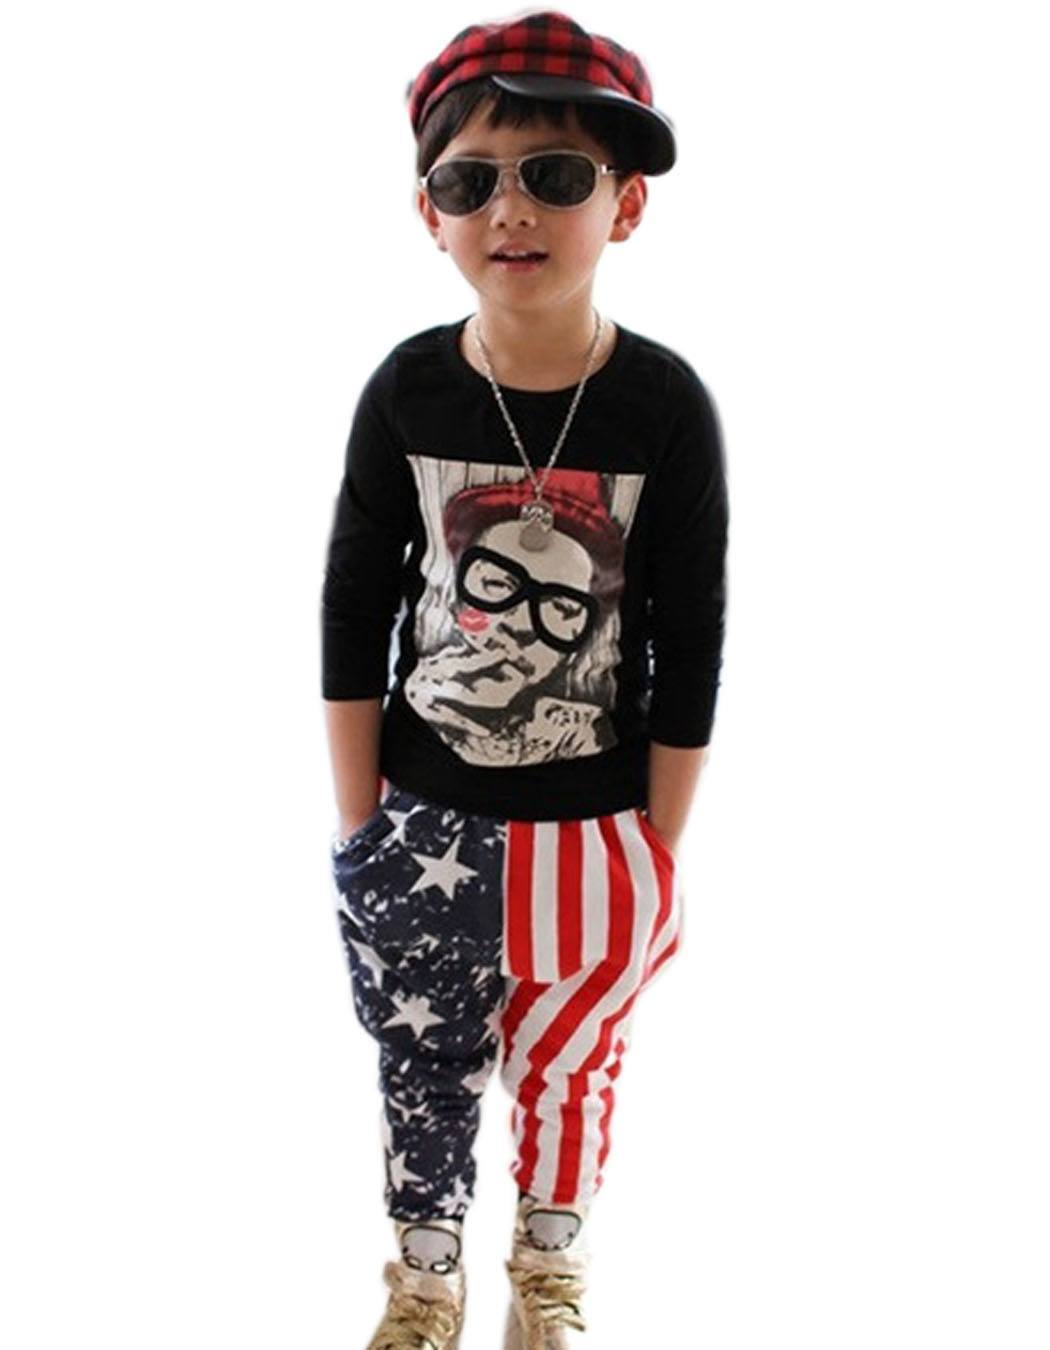 New-2015-Kids-Boy-Pants-Fashion-Elastic-Waist-Pocket-Stripped-Star-Print-Patchwork-Pants-3-11Y 4th of July Outfits for Kids-20 Cute Ways to Dress Up Kids on 4th July